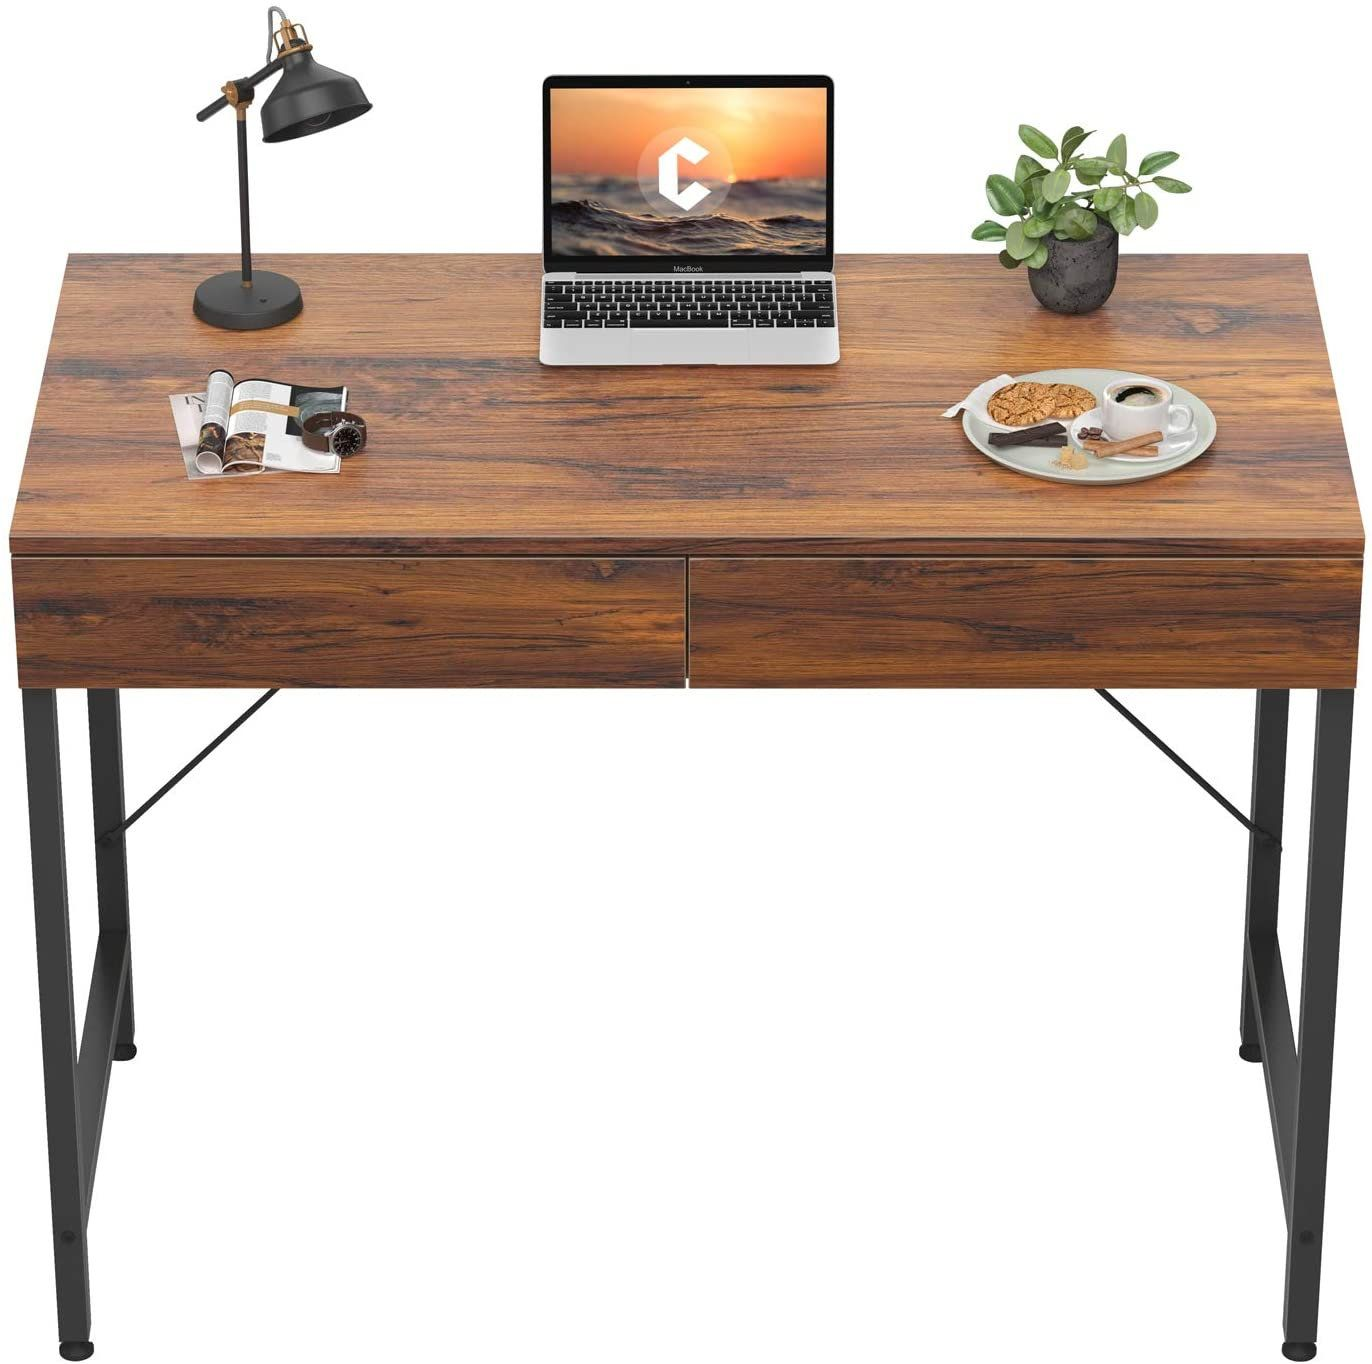 Computer Small Desk 40 Inches With 2 Storage Drawers For Home Office Writing Desk Makeup Vanity Console Table Rustic 4 Different Colors In 2021 Contemporary Computer Desk Unique Display Small Desk Computer desk 40 inches wide